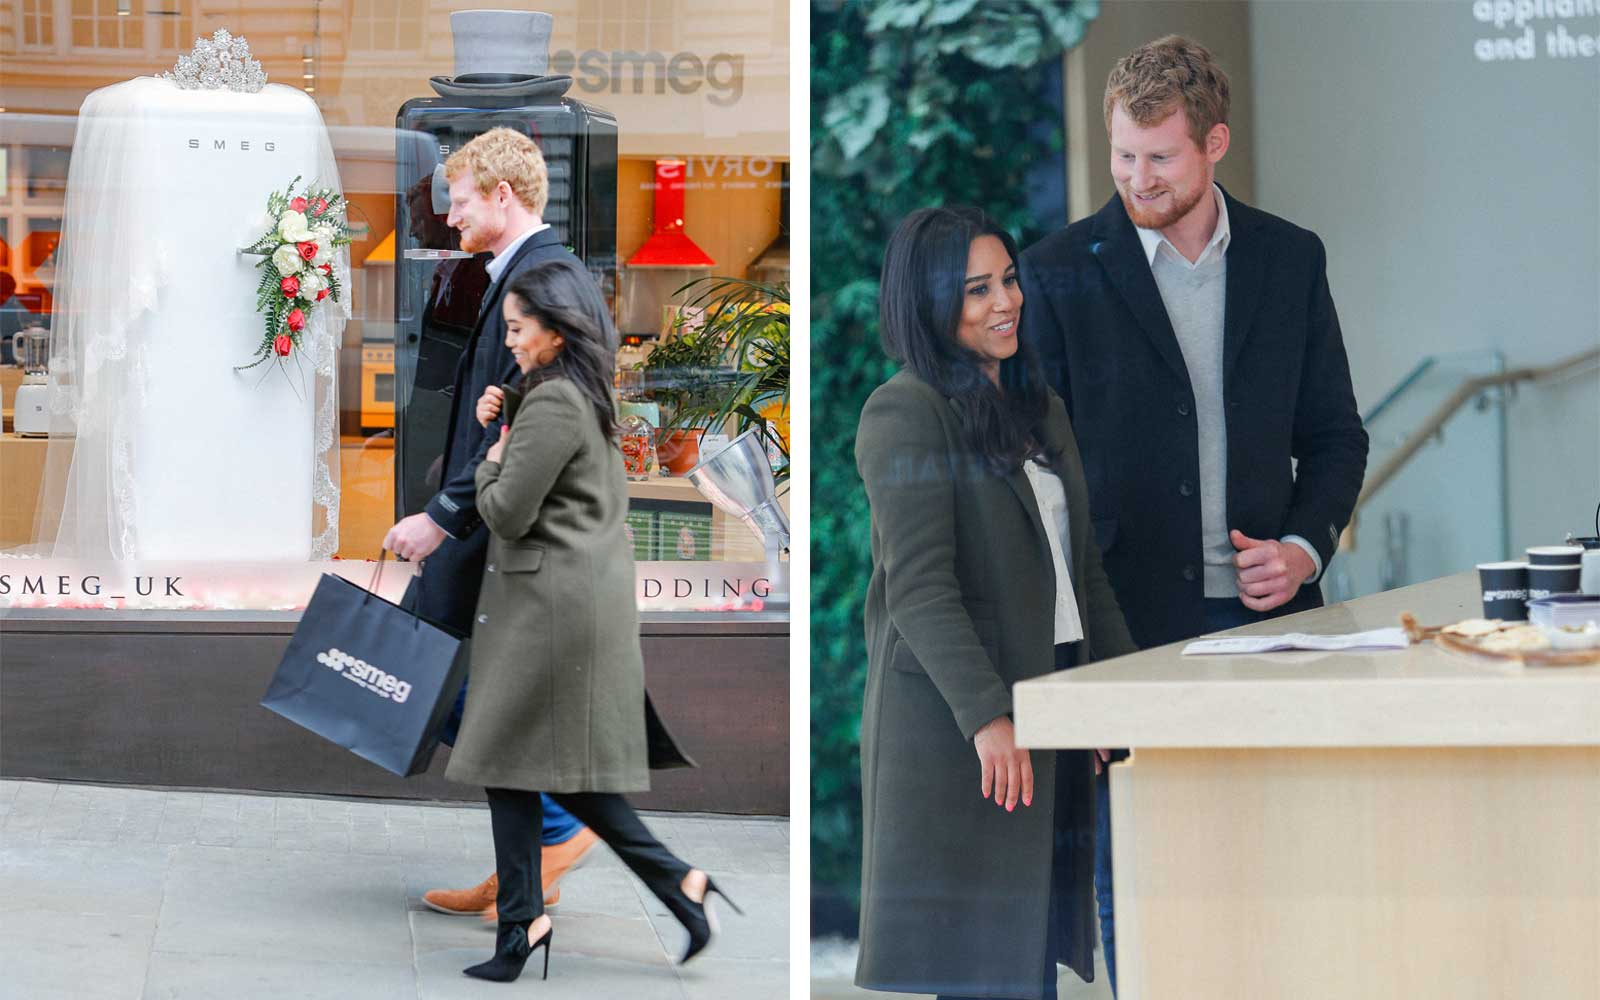 The Smeg London Store Enjoys A 'Royal' Visit As Prince Harry And Meghan Markle Lookalikes Are Spotted Shopping For Wedding Gifts